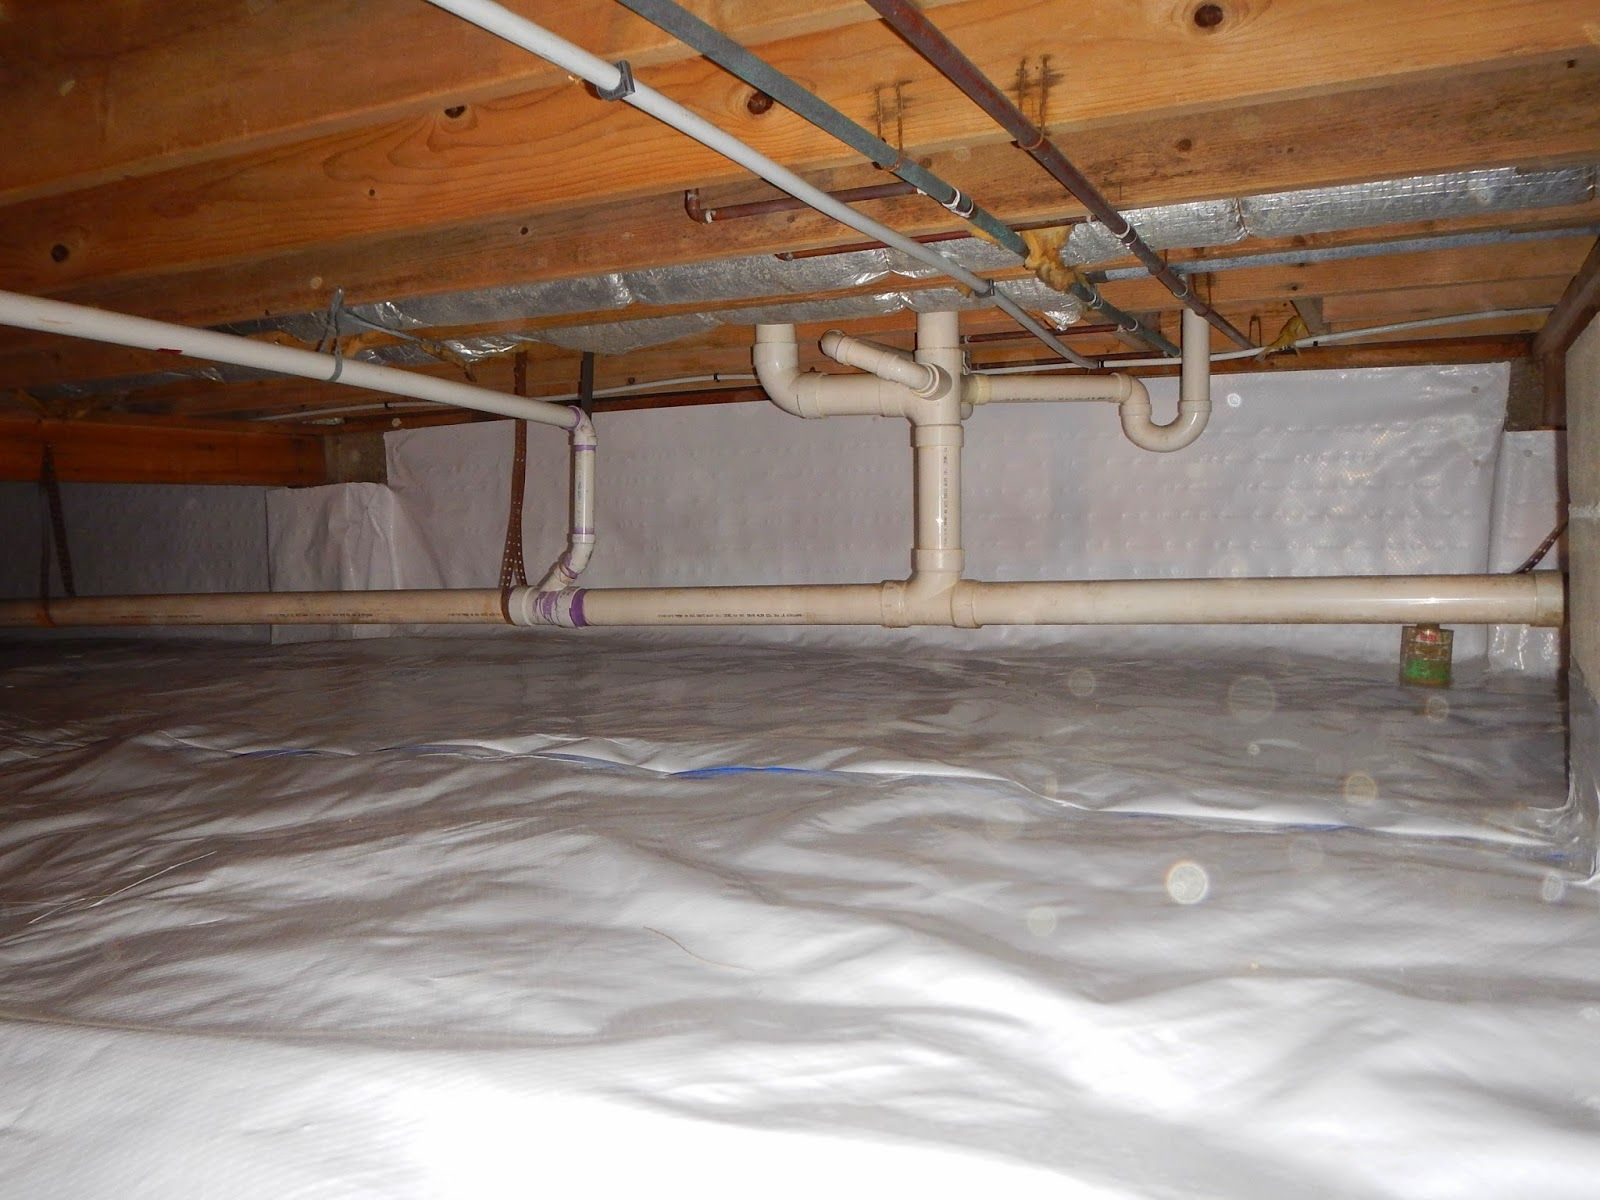 How To Prevent Frozen Water Pipes Http Indianacrawlspacerepair Blogspot Com 2015 01 How To Prevent Frozen Water Pipes Home Insulation Water Pipes Crawlspace